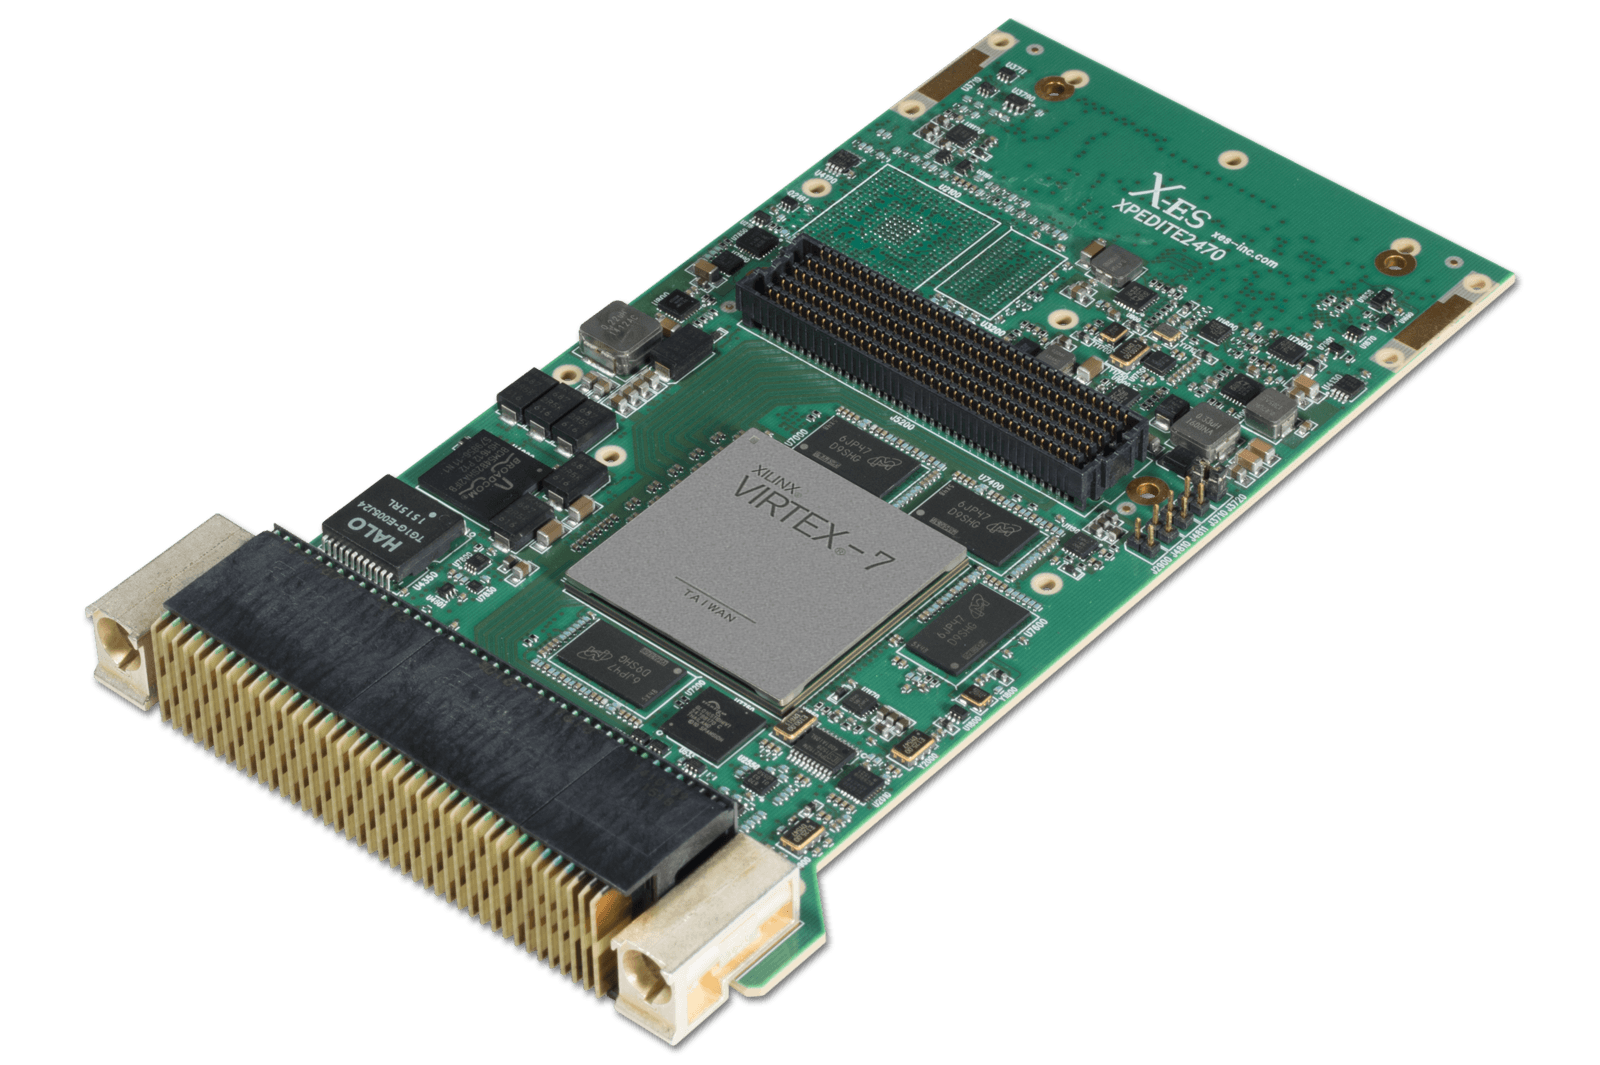 hight resolution of xpedite2470 3u vpx fpga description features technical specs accessories documentation block diagram